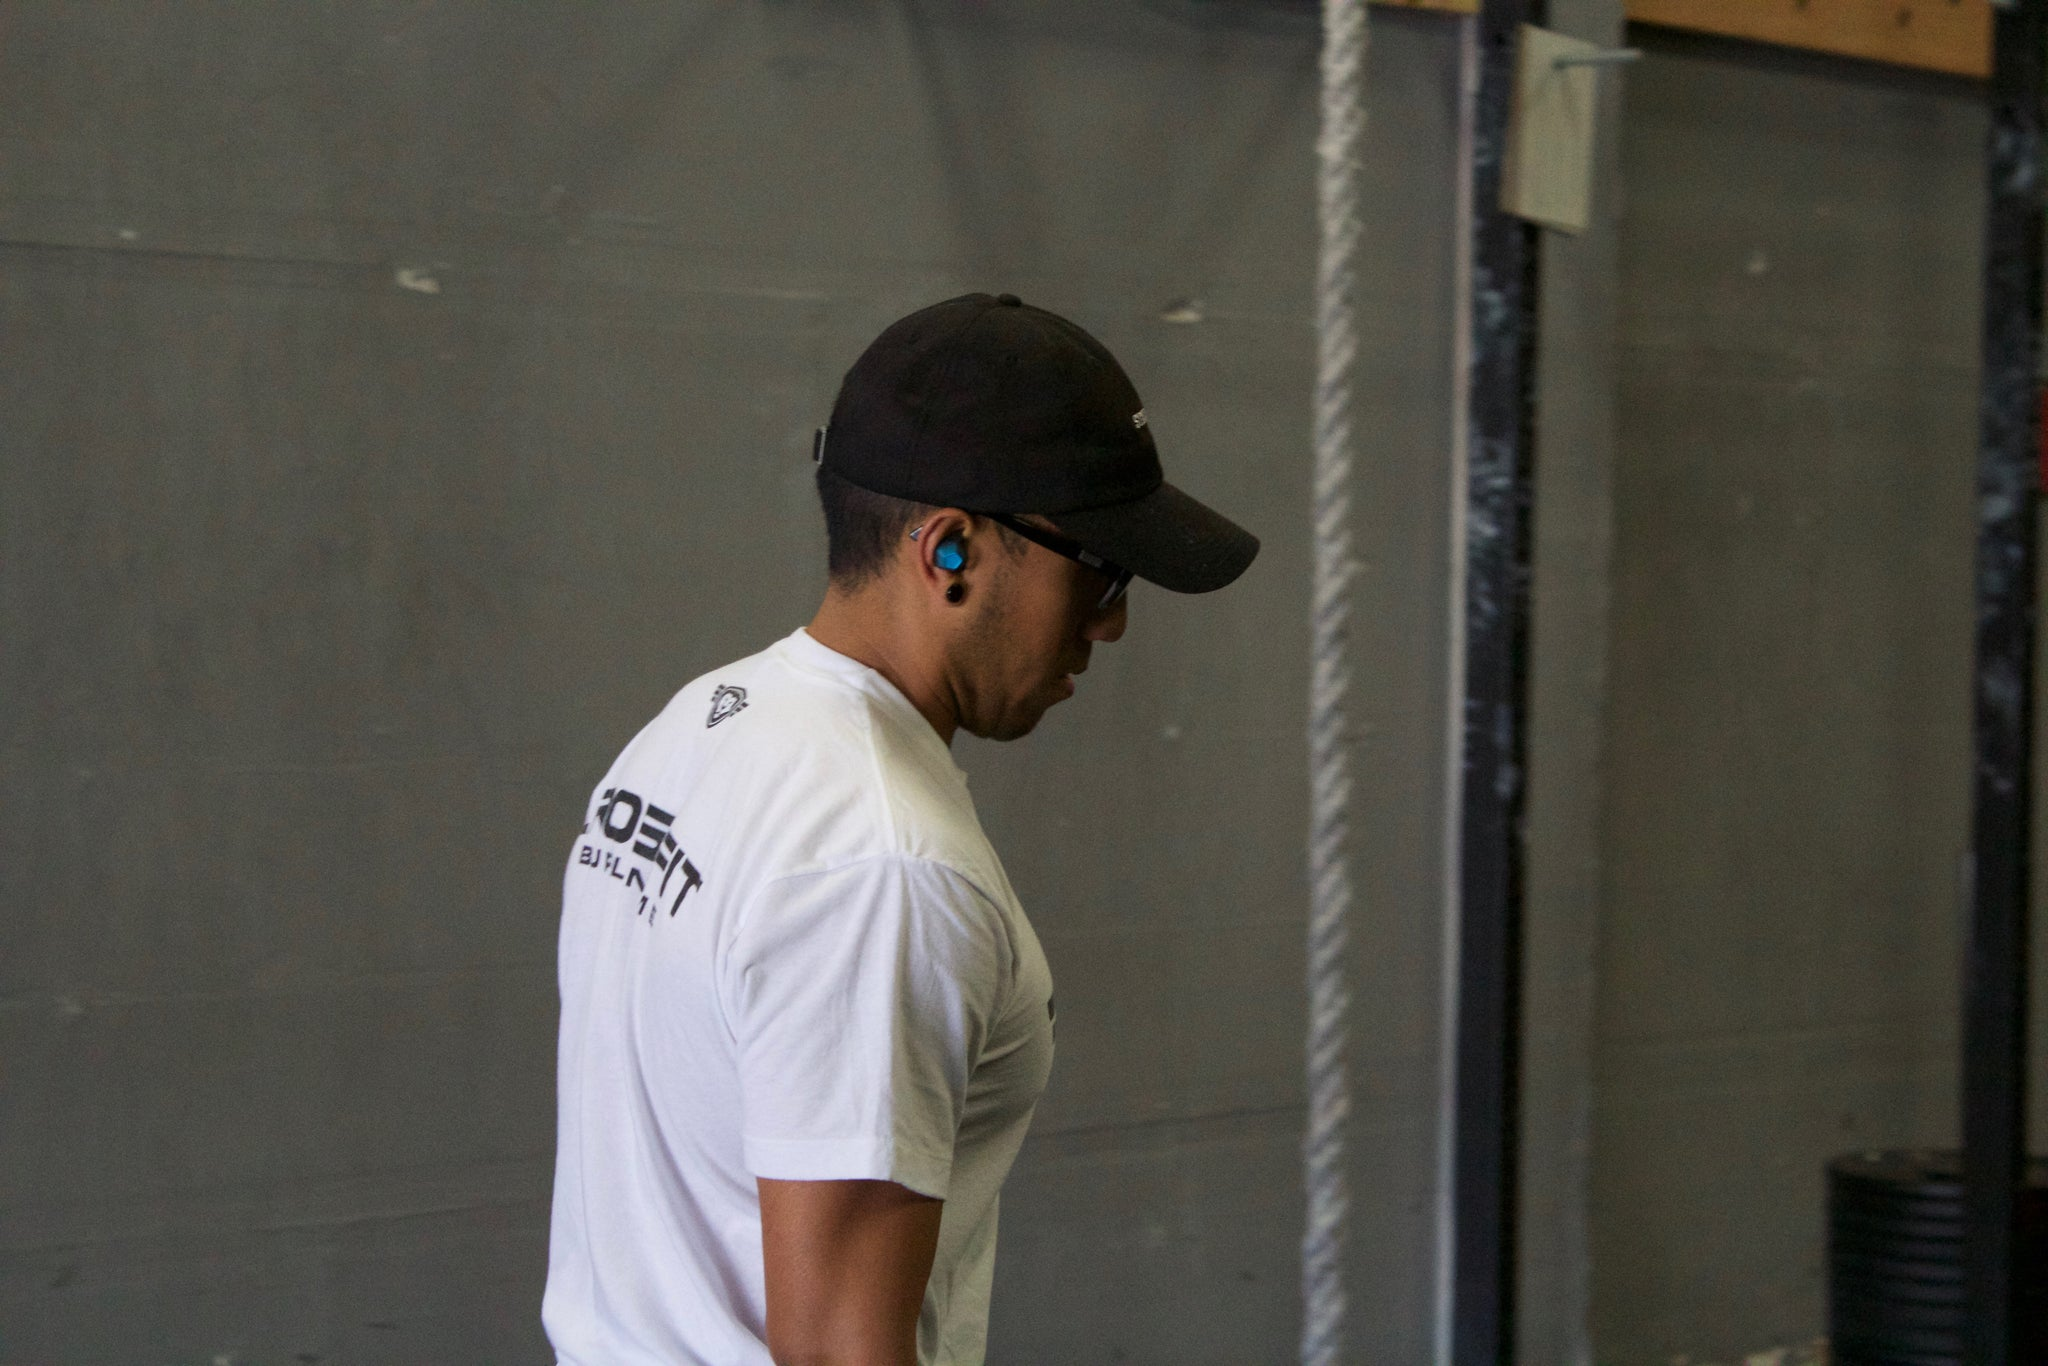 Putting KANOA to the Test at Crossfit Burlingame